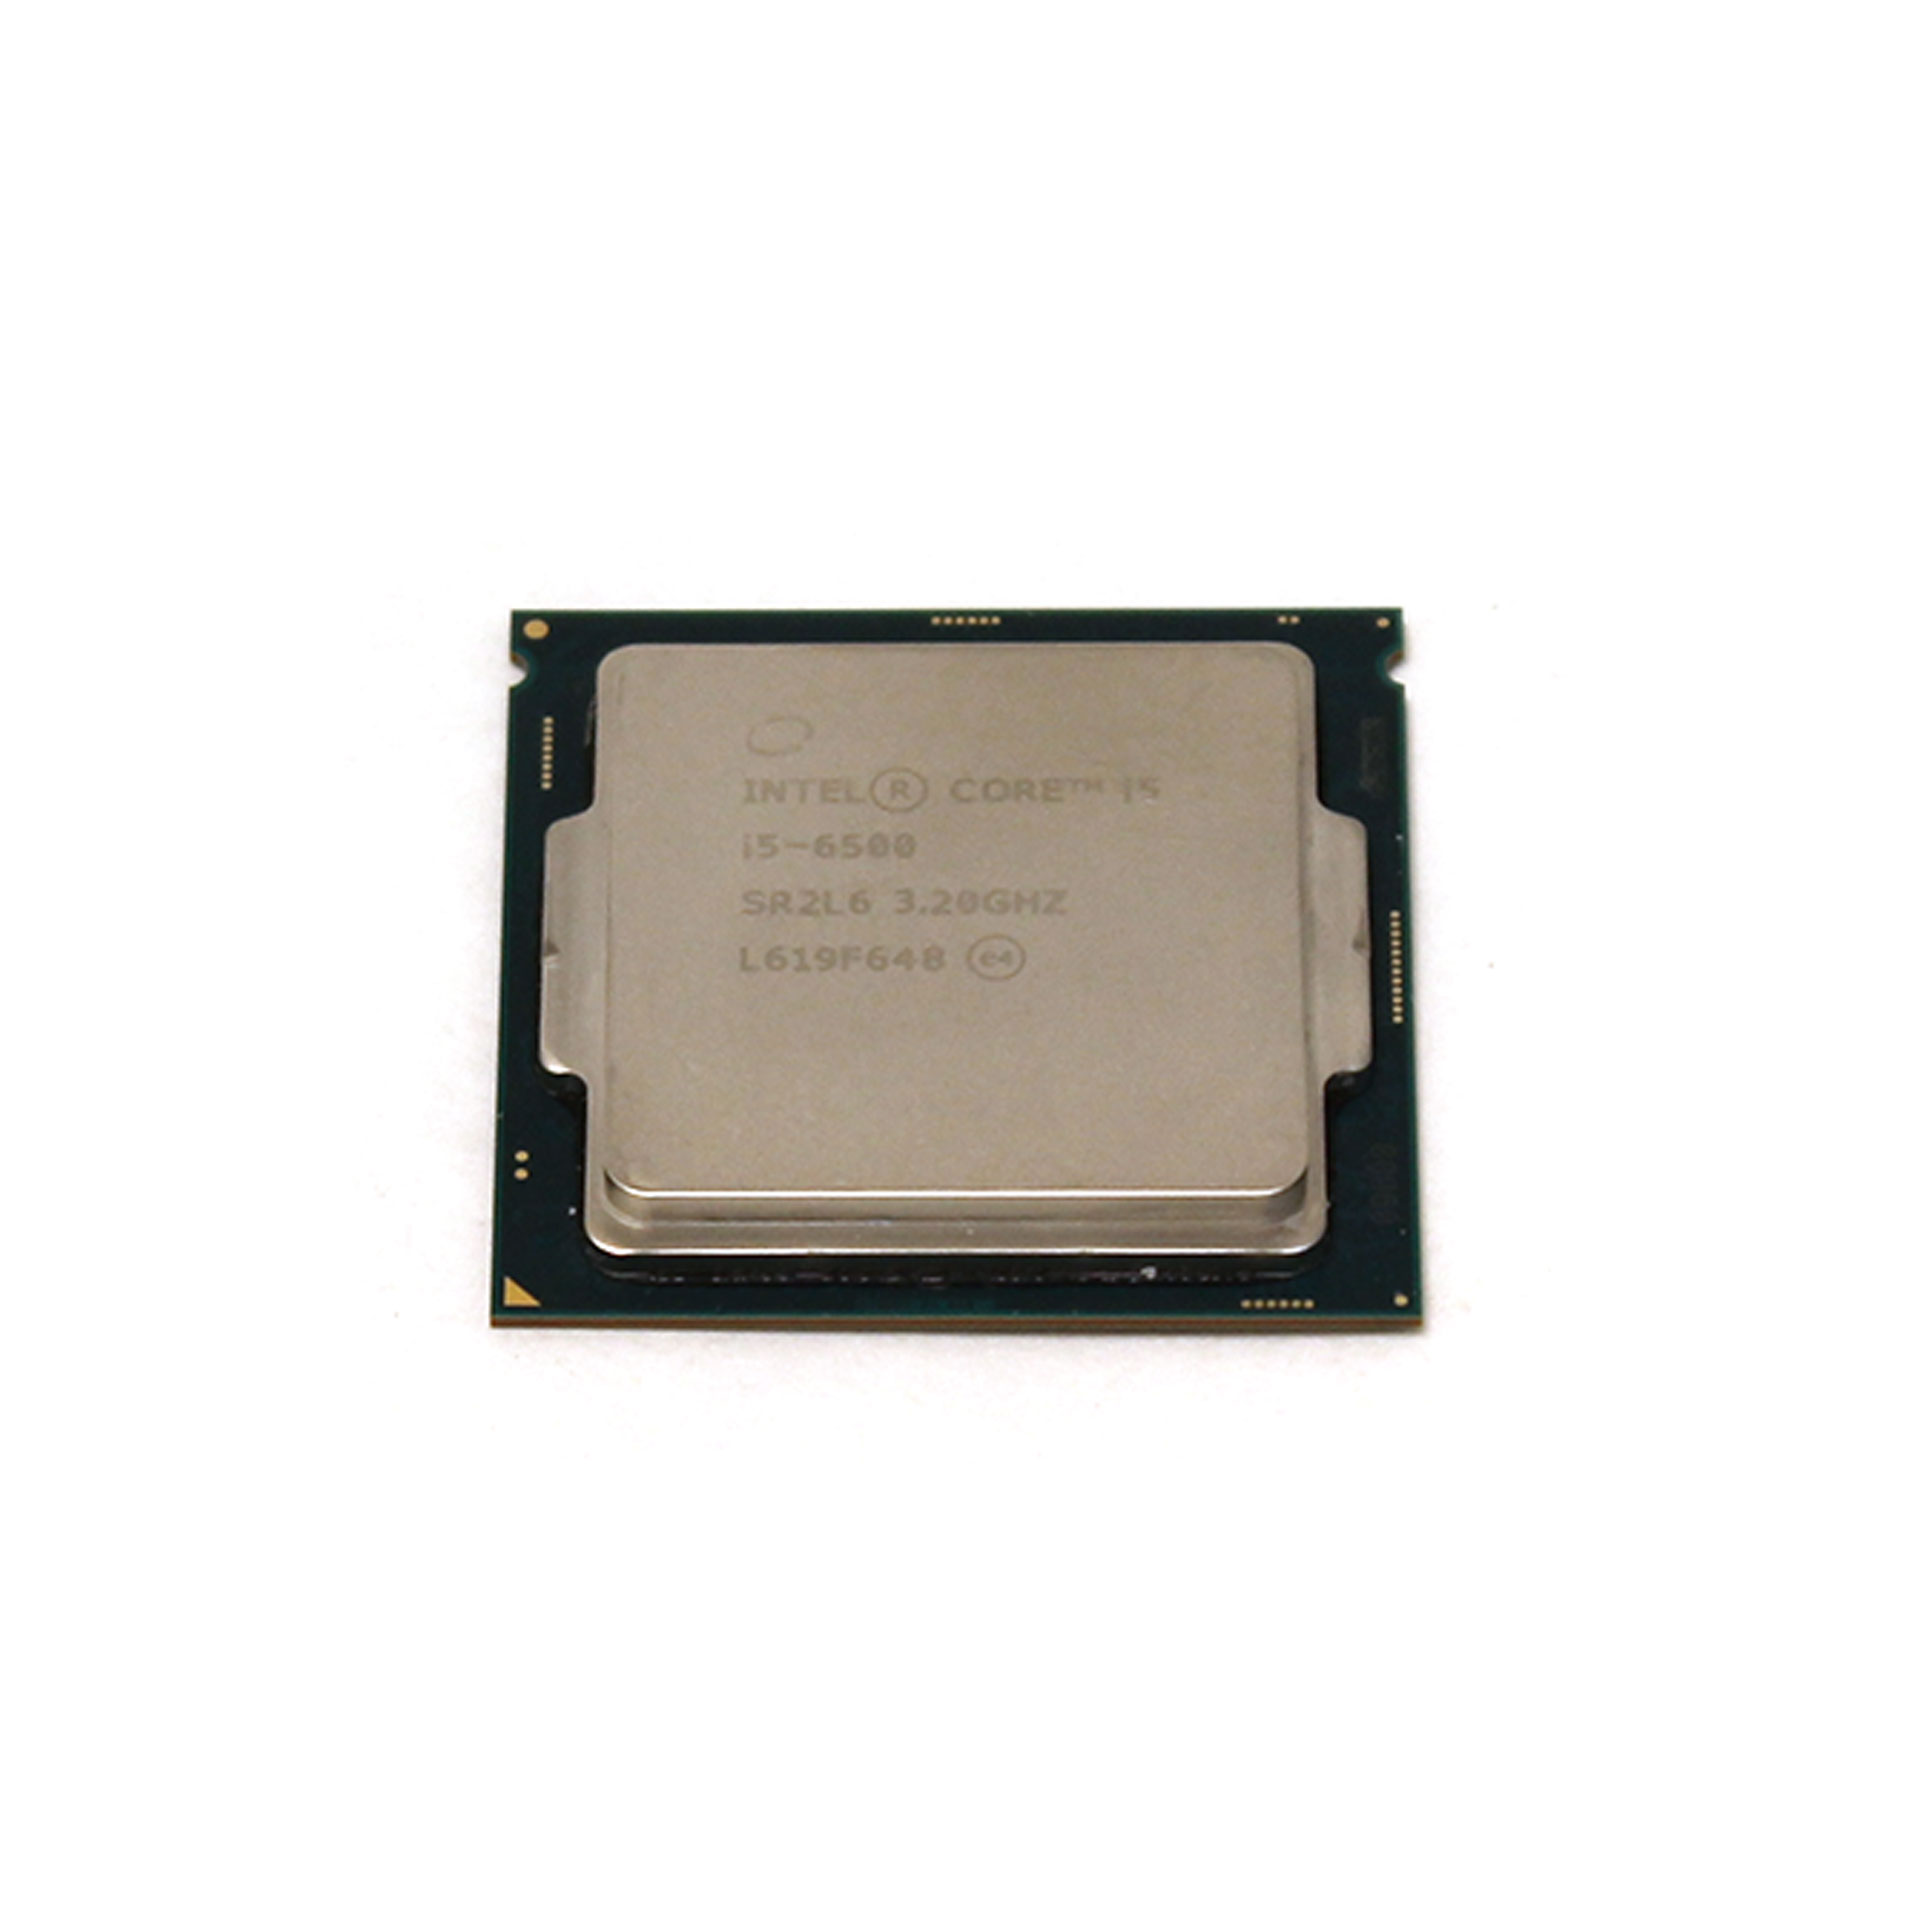 Intel Core i5-6500 Skylake Quad-Core 3.2 GHz LGA 1151 CPU SR2L6